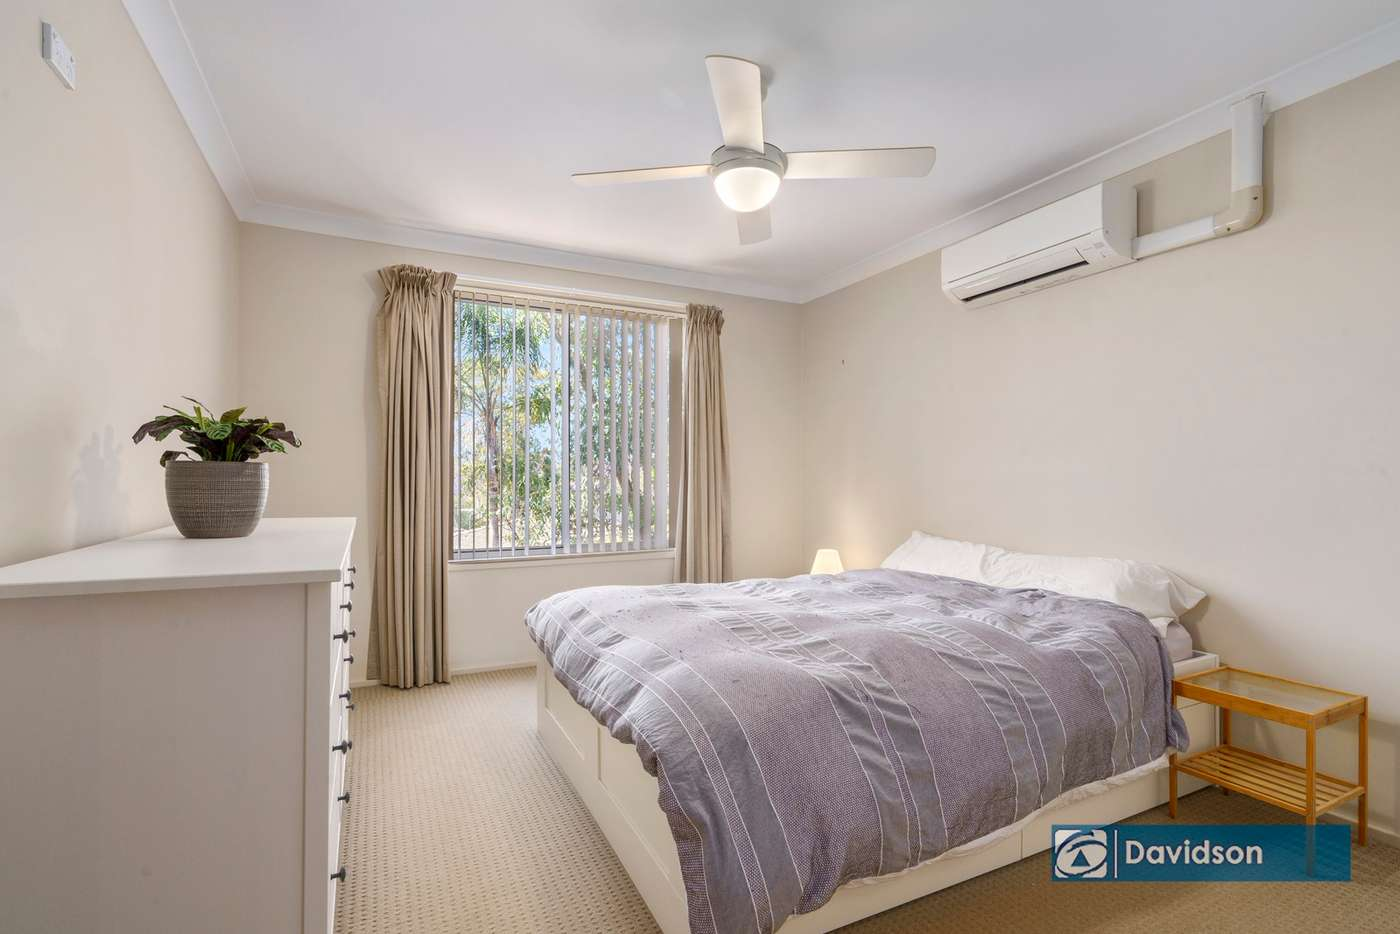 Fifth view of Homely house listing, 6/87 Walder Road, Hammondville NSW 2170